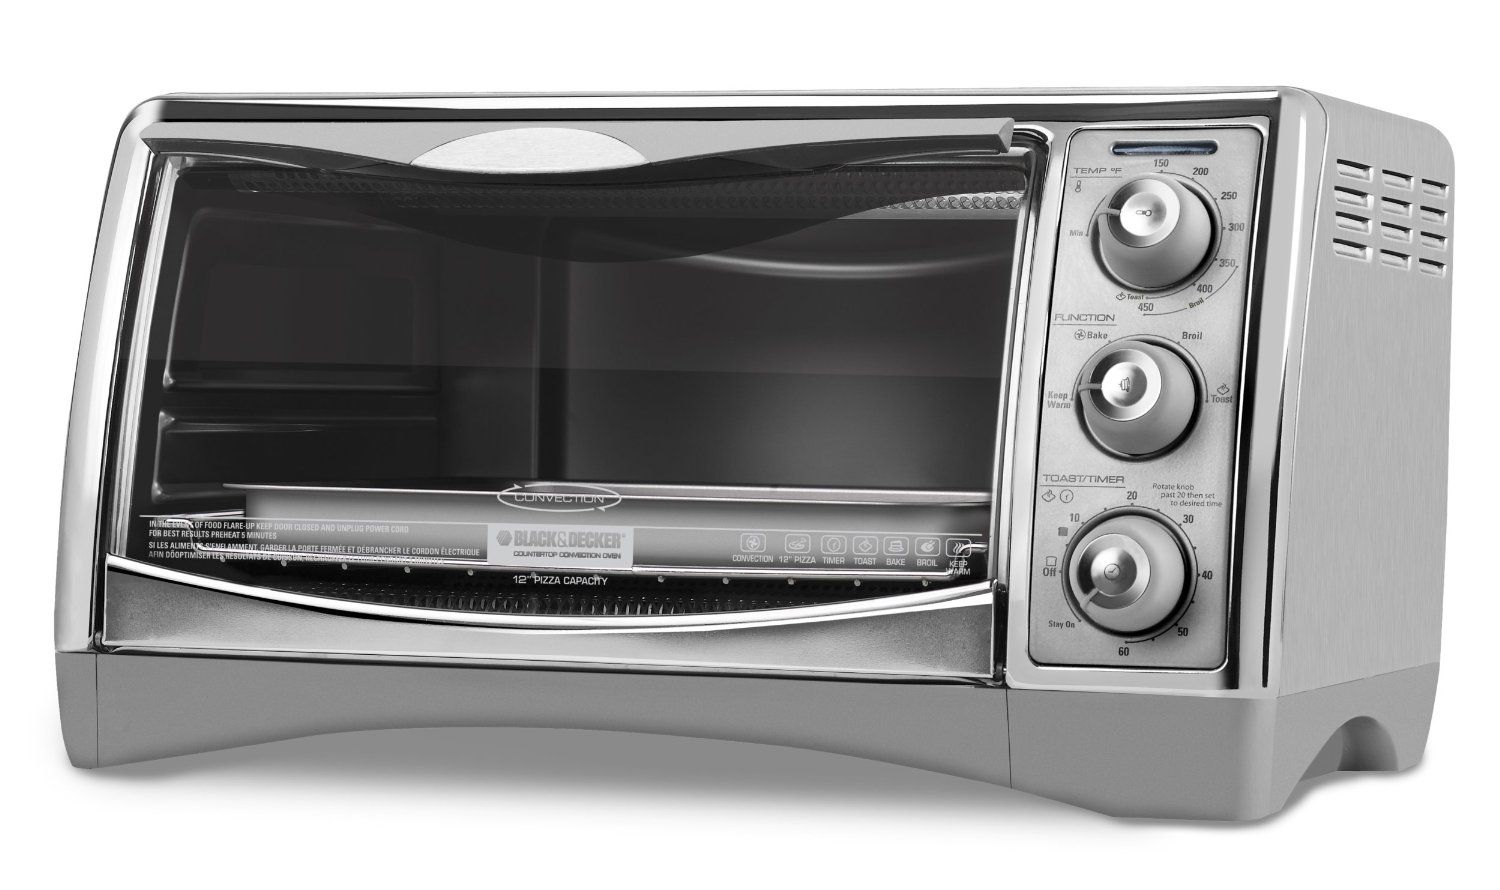 Black Decker Cto4500s 6 Slice Countertop Convection Oven With Pizza Bump Stainless St Convection Toaster Oven Toaster Oven Reviews Countertop Convection Oven